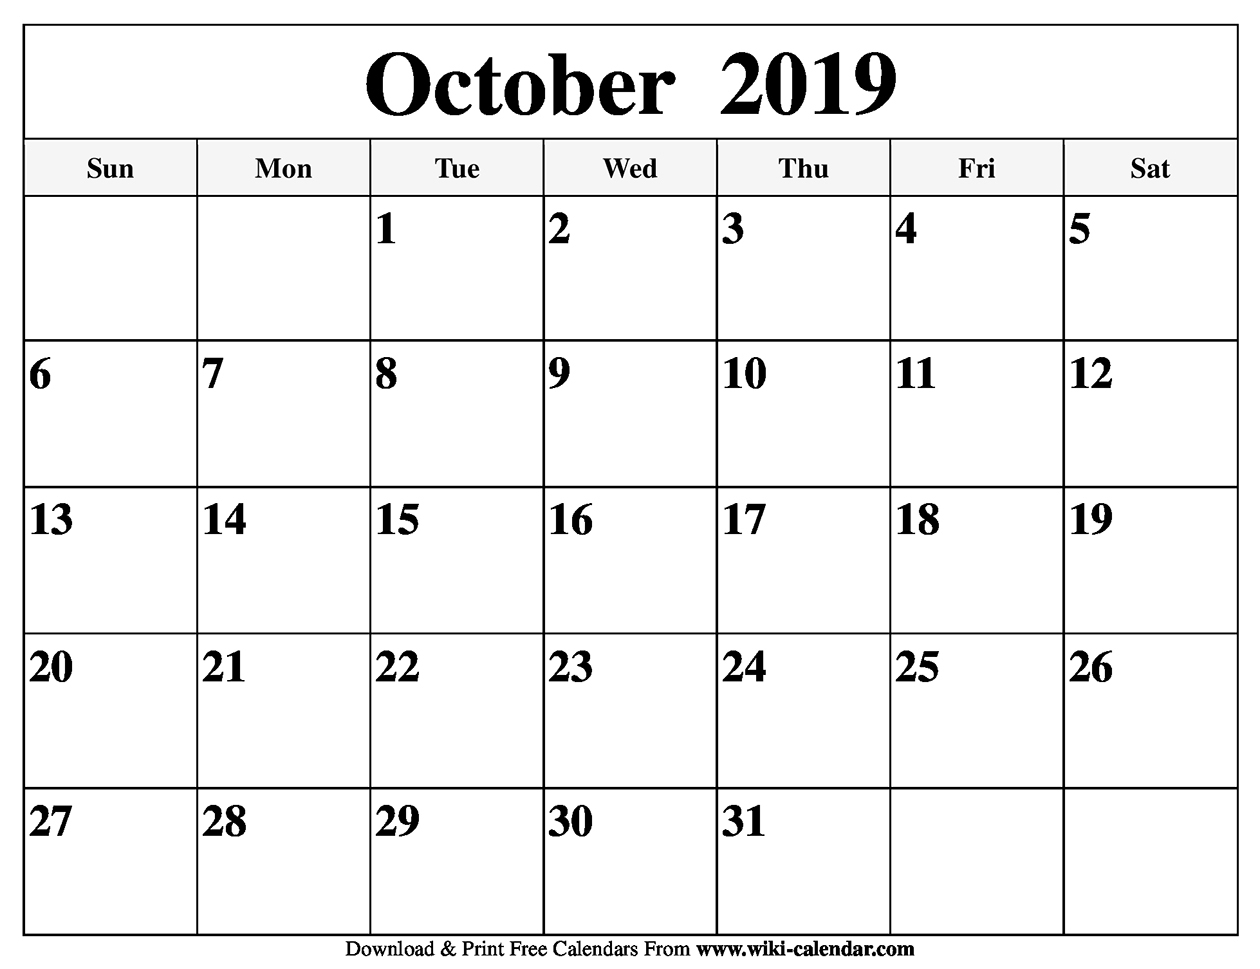 Blank October 2019 Calendar Printable in Free Printable Scary October Calendar 2019